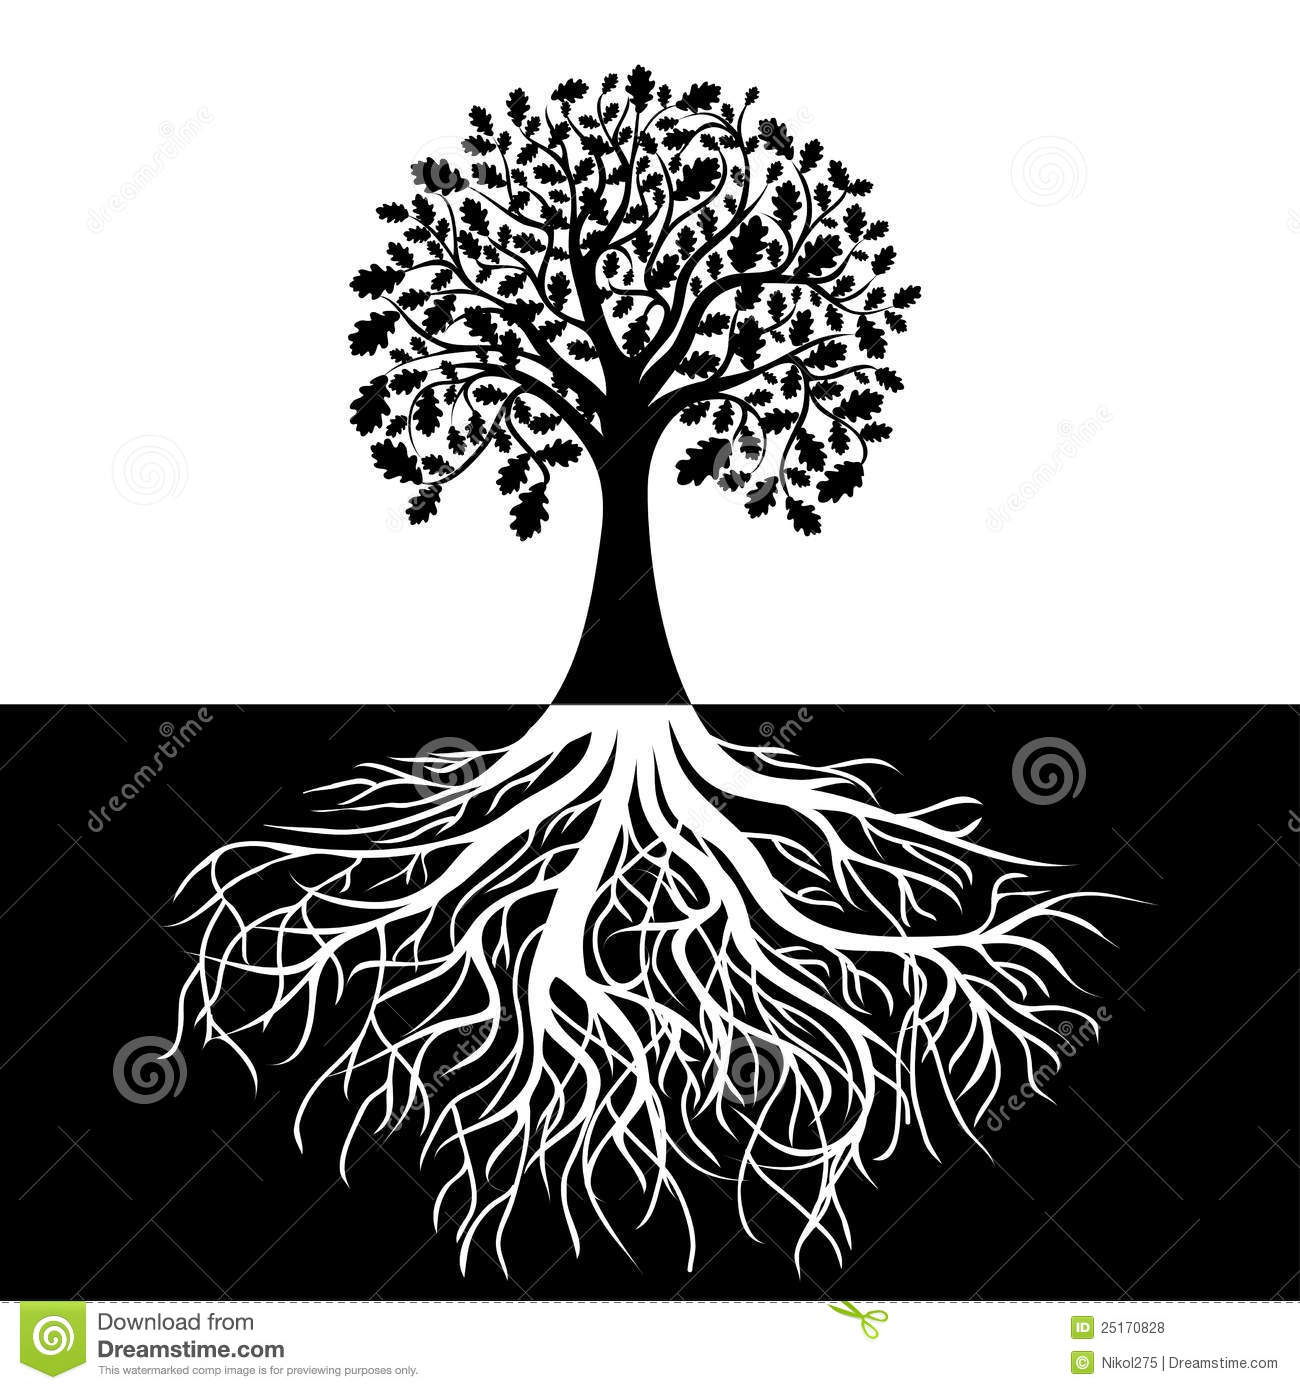 Tree With Roots On Black And White Background Stock Vector